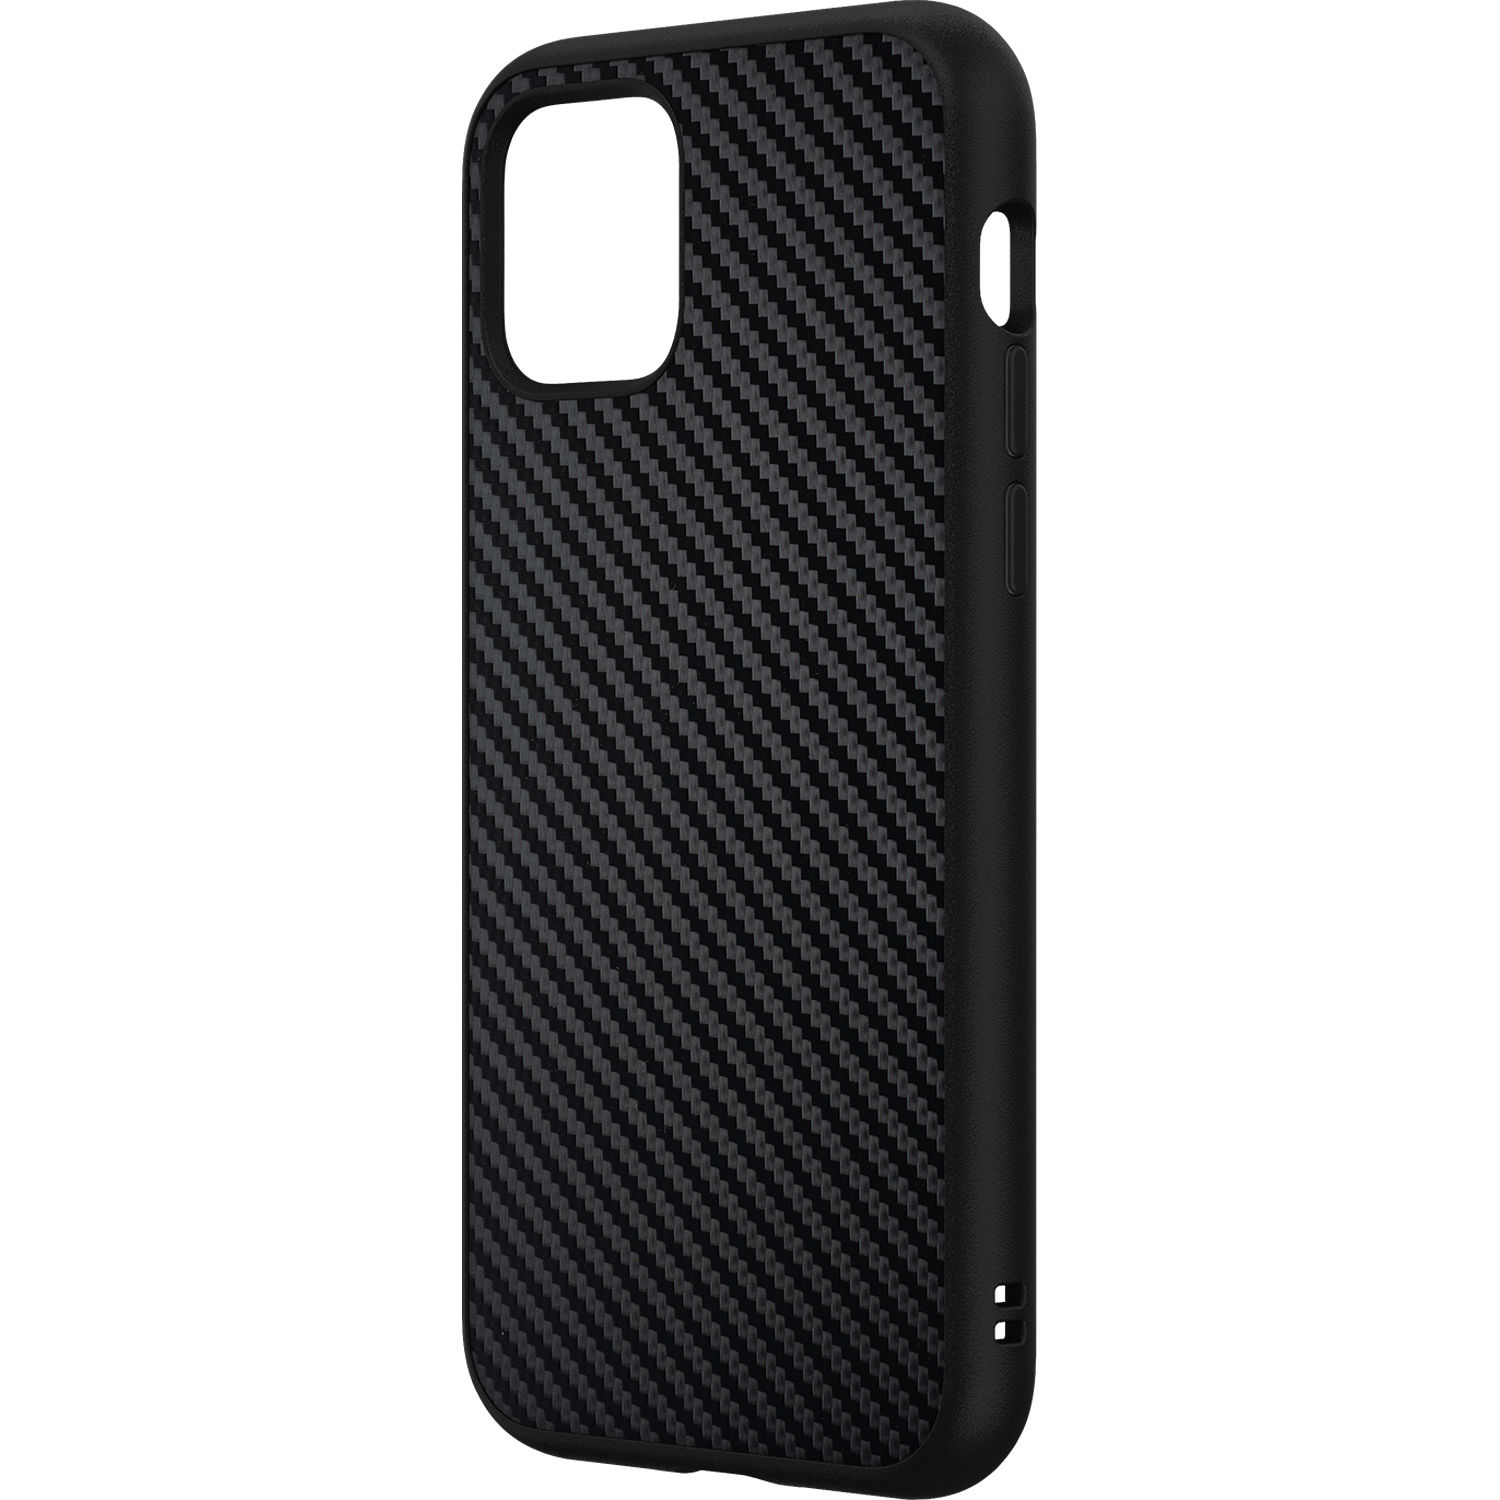 Rhinoshield Solidsuit Case For Iphone 11 Pro Max Ssa0114949 B H